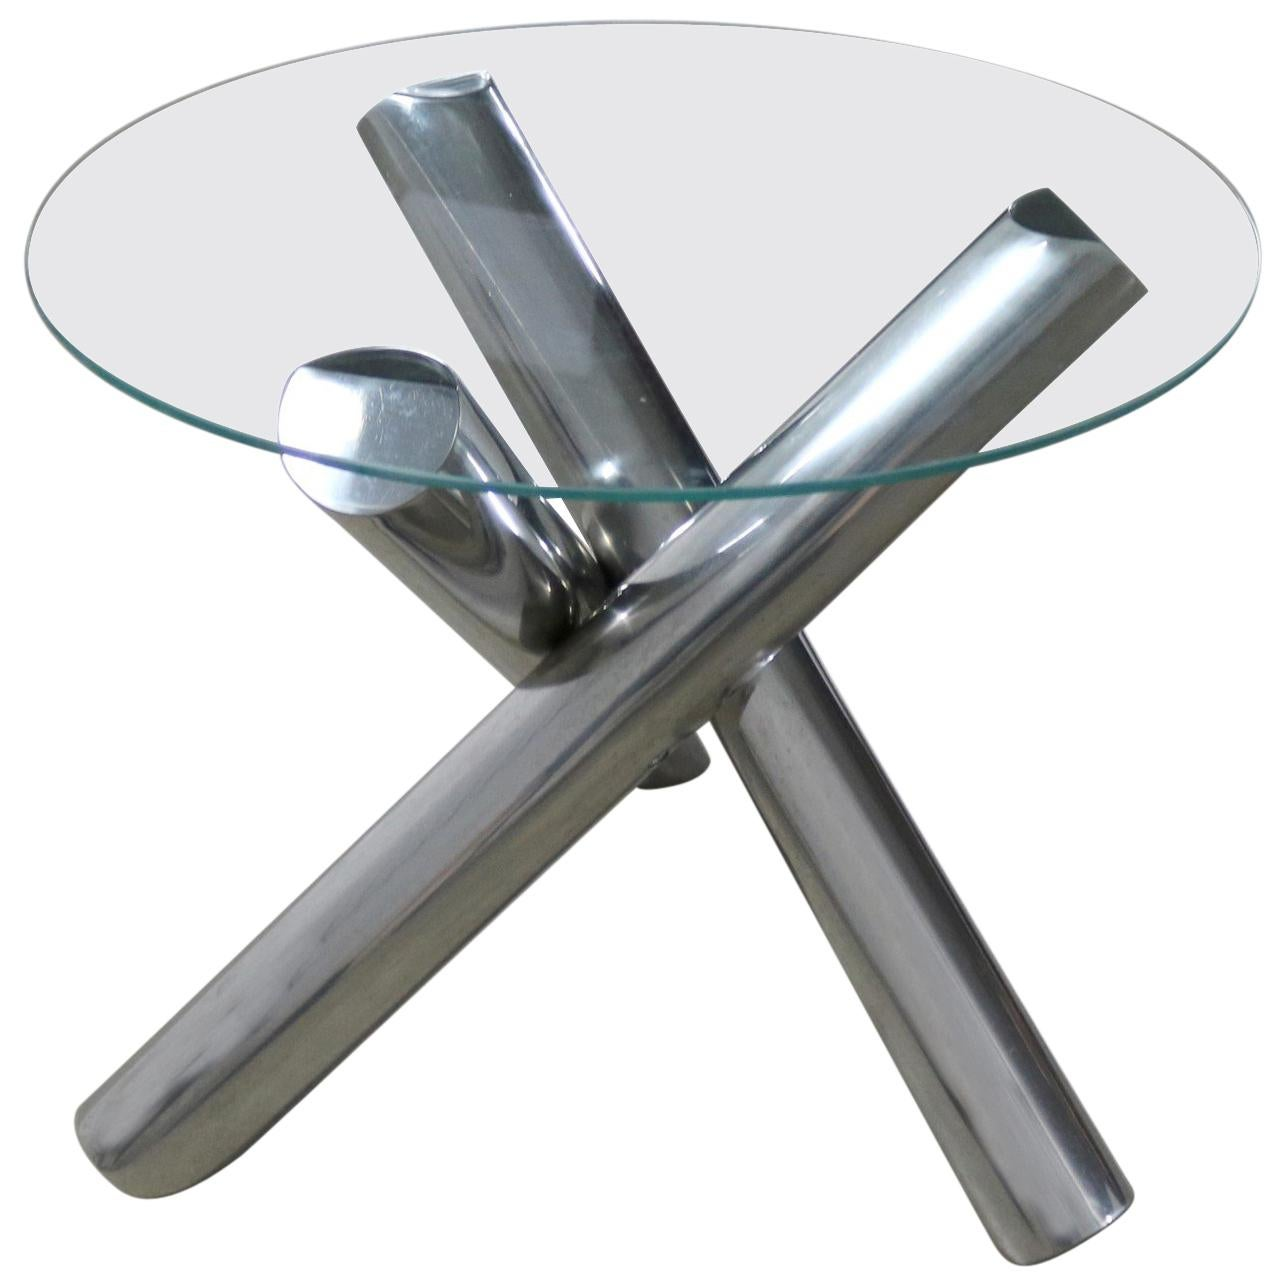 Tubular Stainless Steel Jacks Tripod End Table Round Glass For Sale